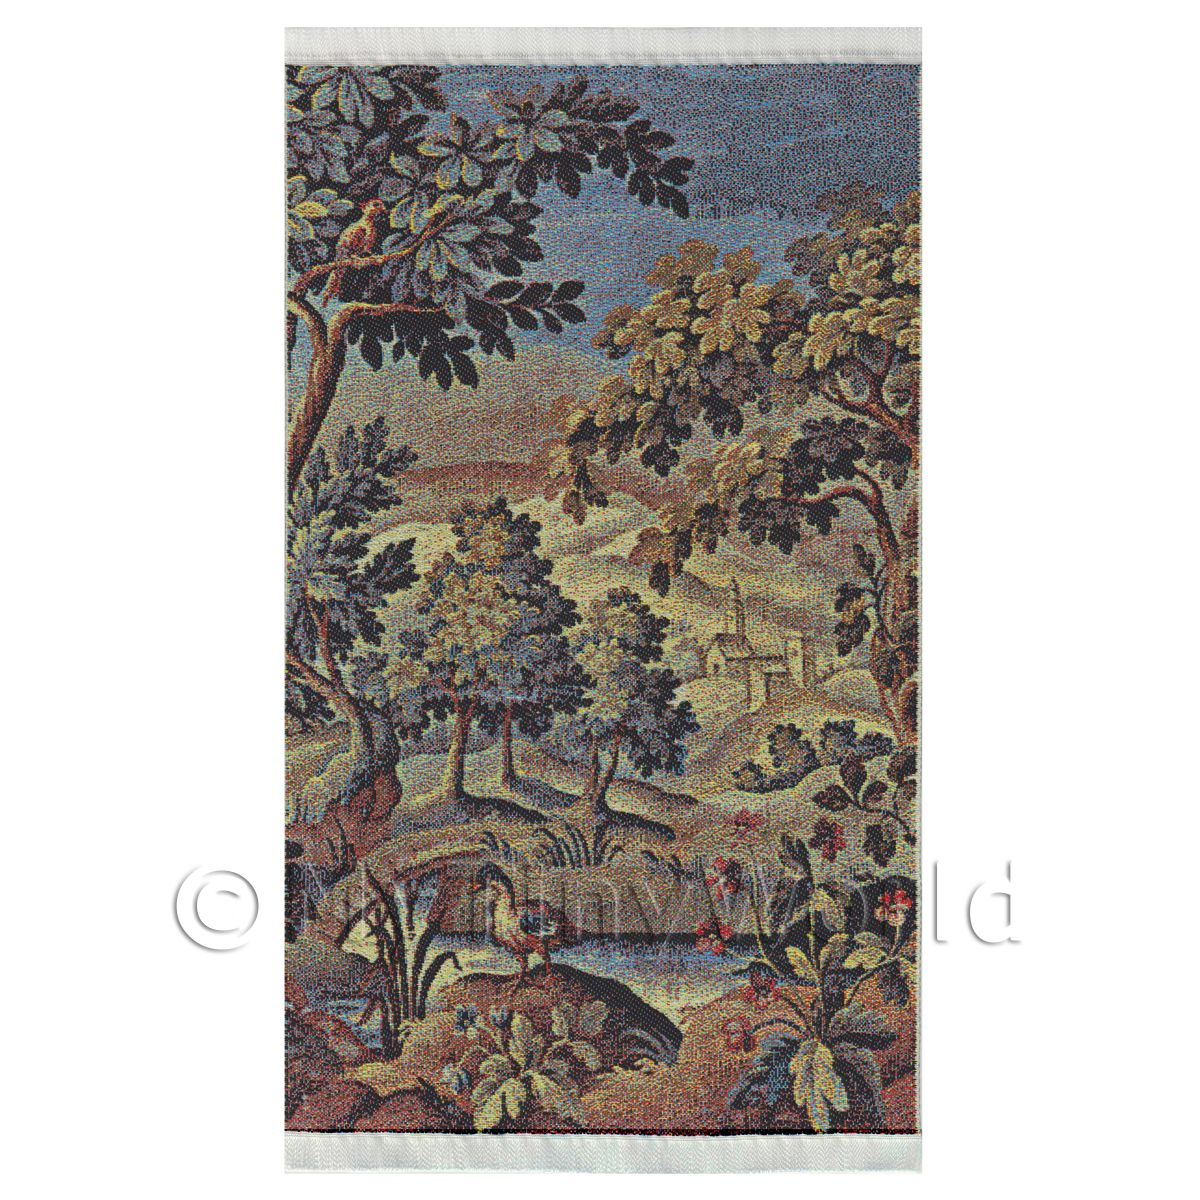 Dolls House Miniature Large Woven Tapestry Country Scene tapmr01